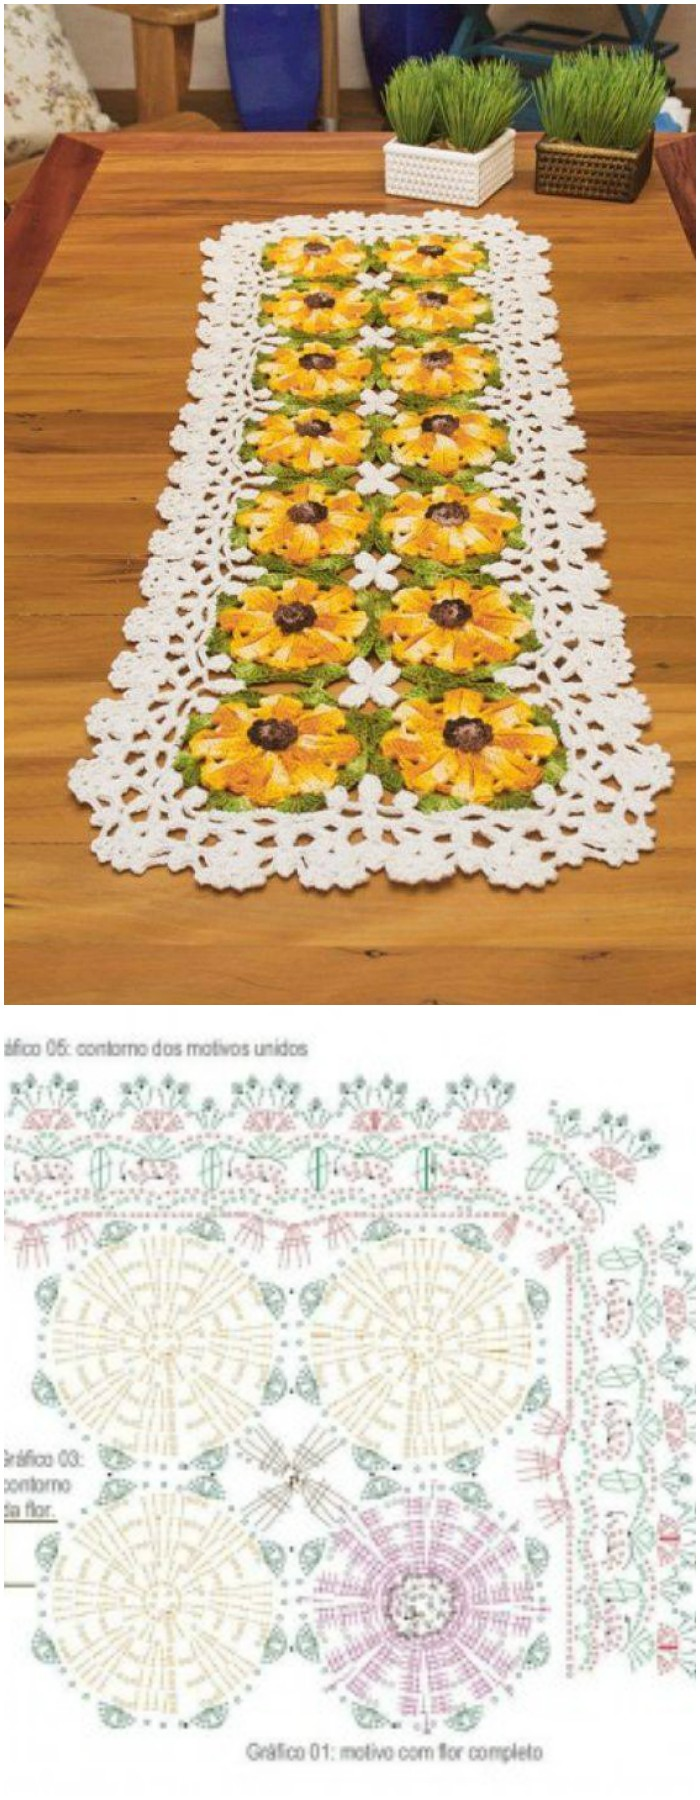 Gorgeous crochet table runner free patterns diy home decor free crochet table runner pattern gorgeous crochet table runner free patterns ccuart Choice Image